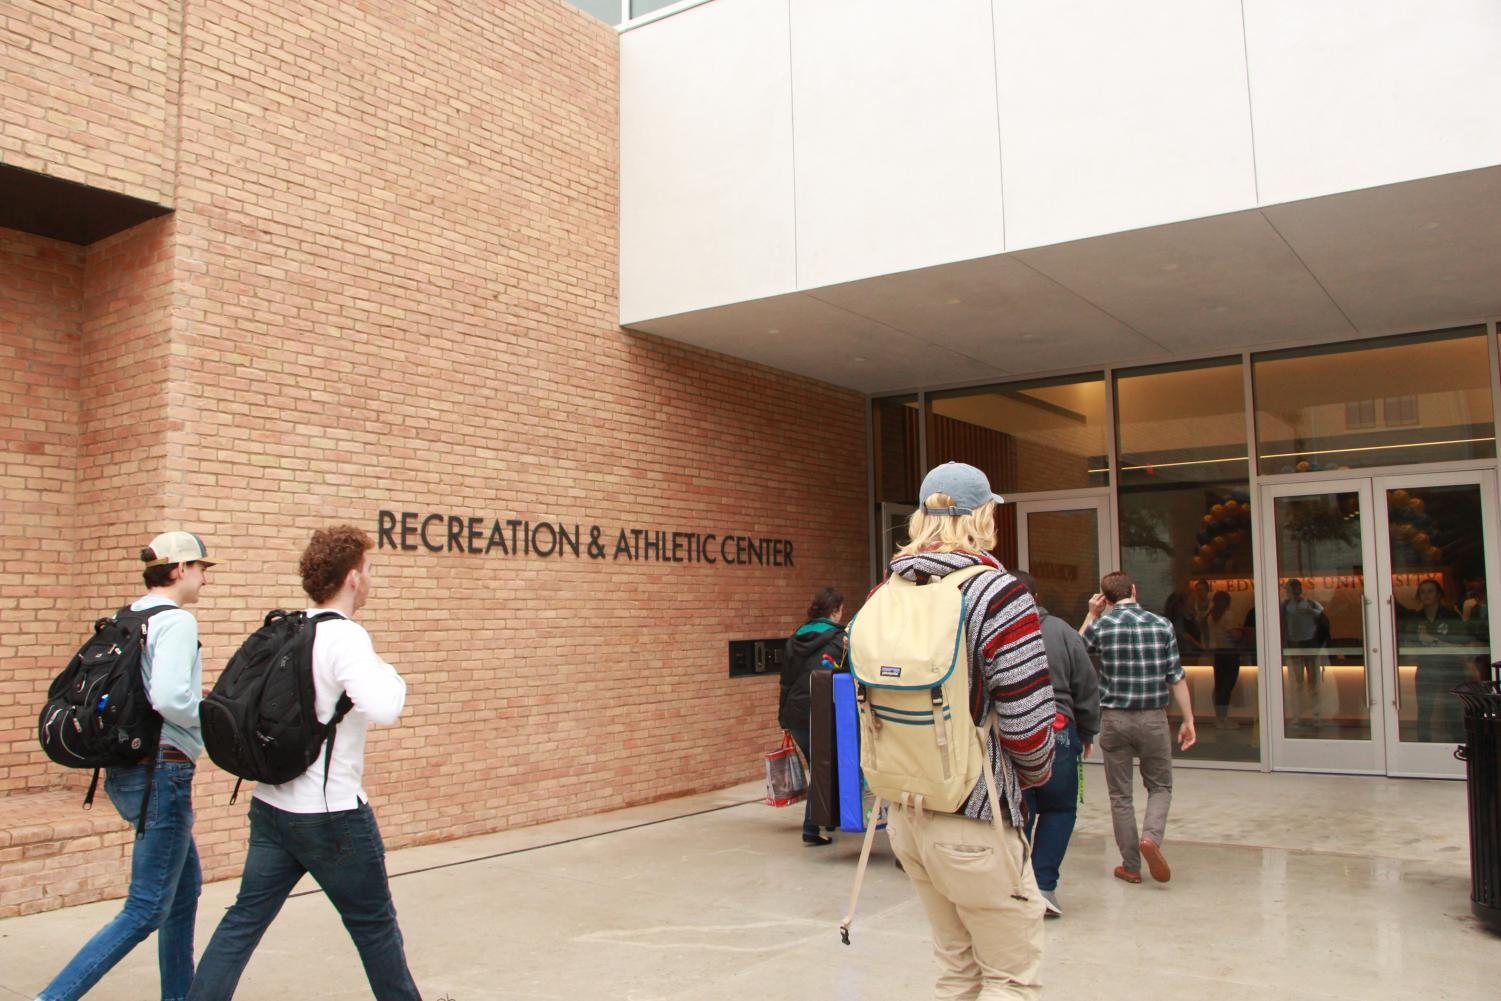 The Recreation and Athletic Center opened on Jan. 13 at 7 a.m. The RecWell staff was preparing for the grand opening at several days' worth of trainings the week before.